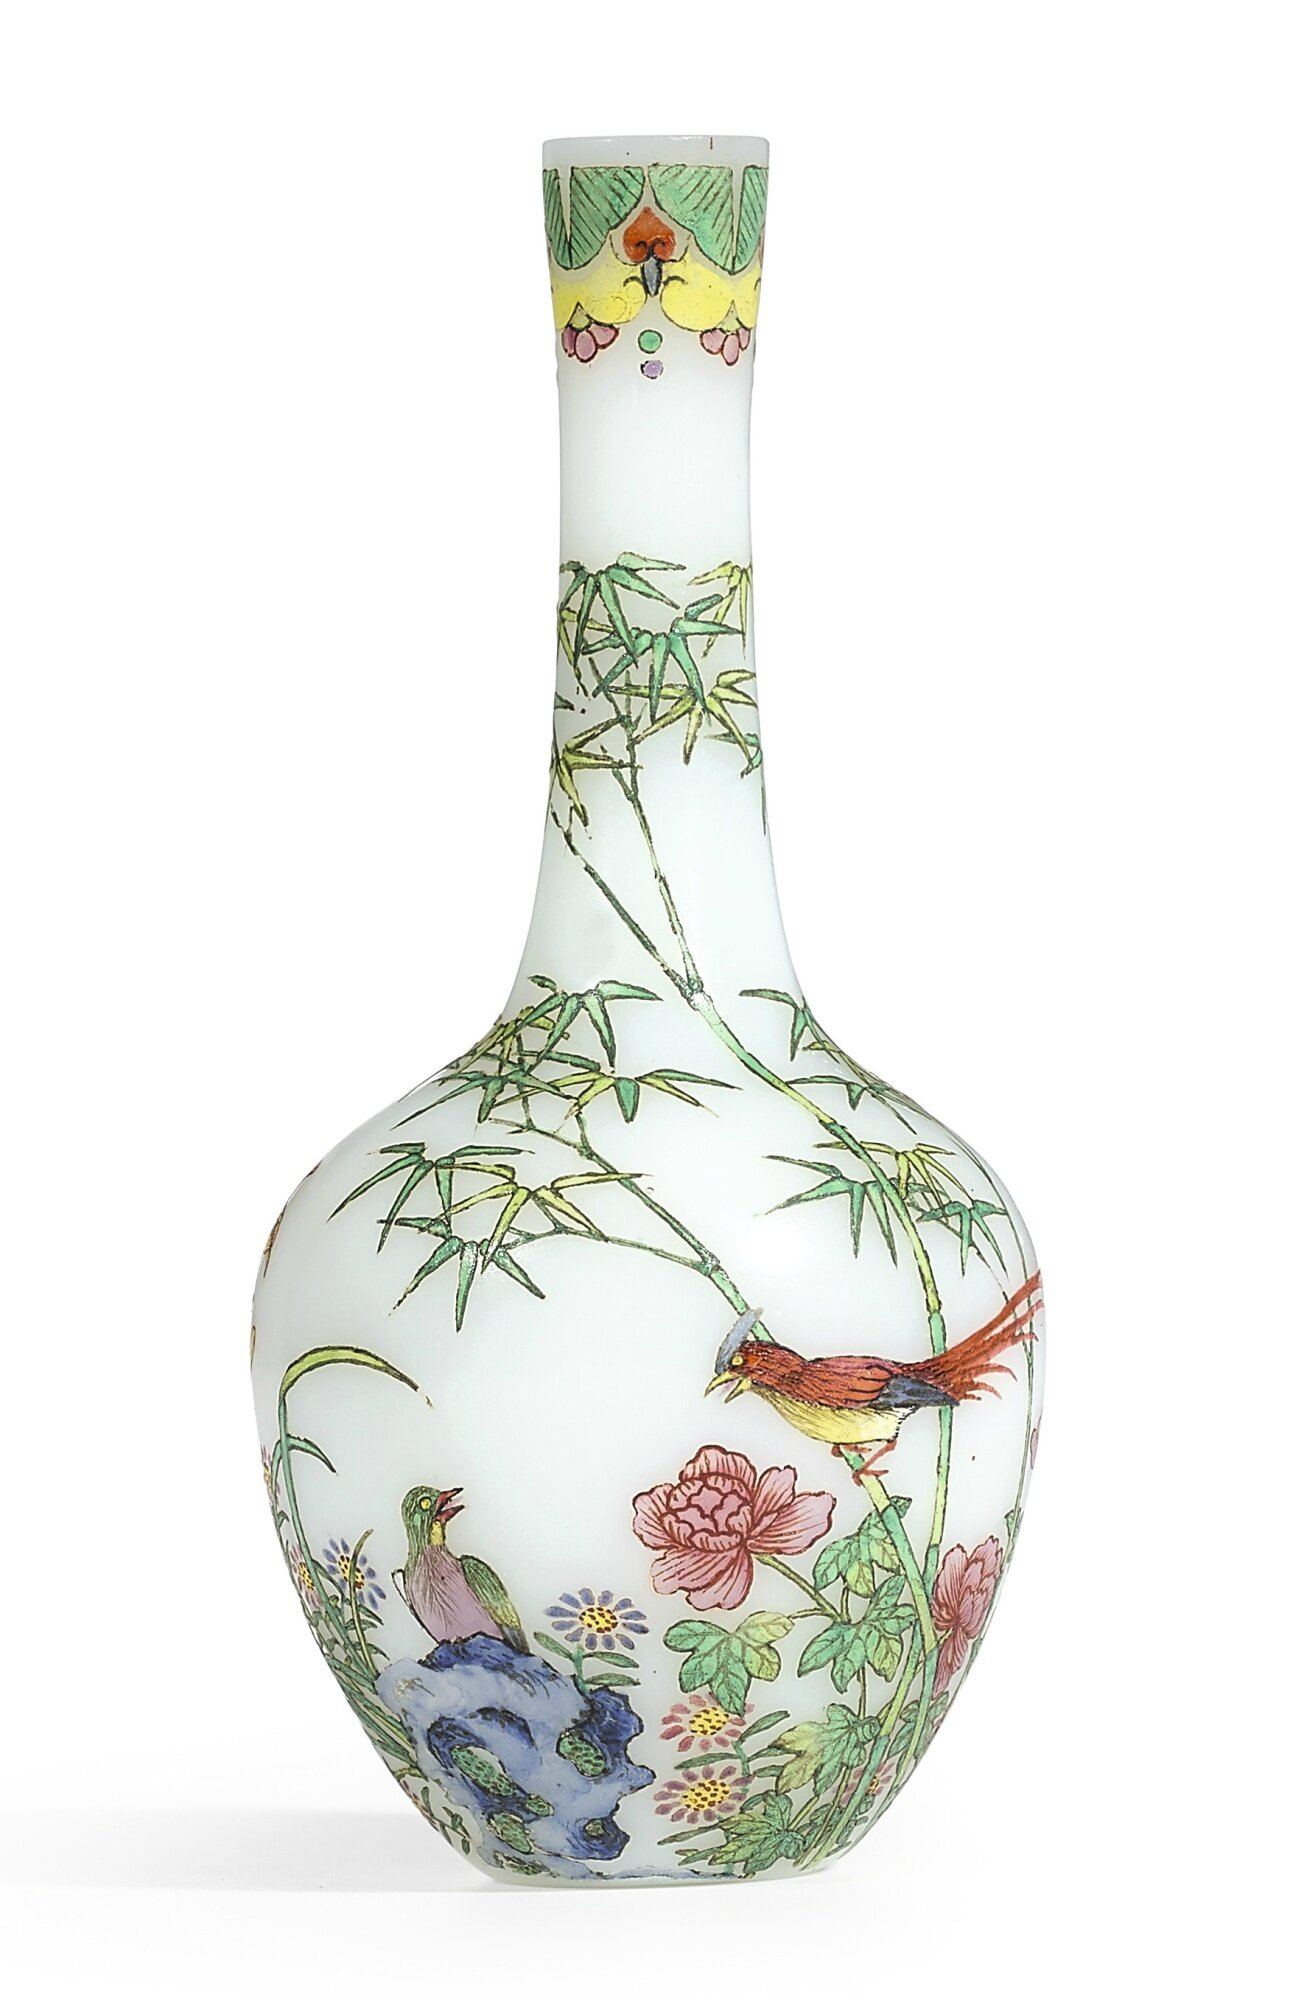 An extremely rare and exquisitely enamelled 'pheasants' glass bottle vase, blue enamel mark and period of Qianlong (1736-1795)